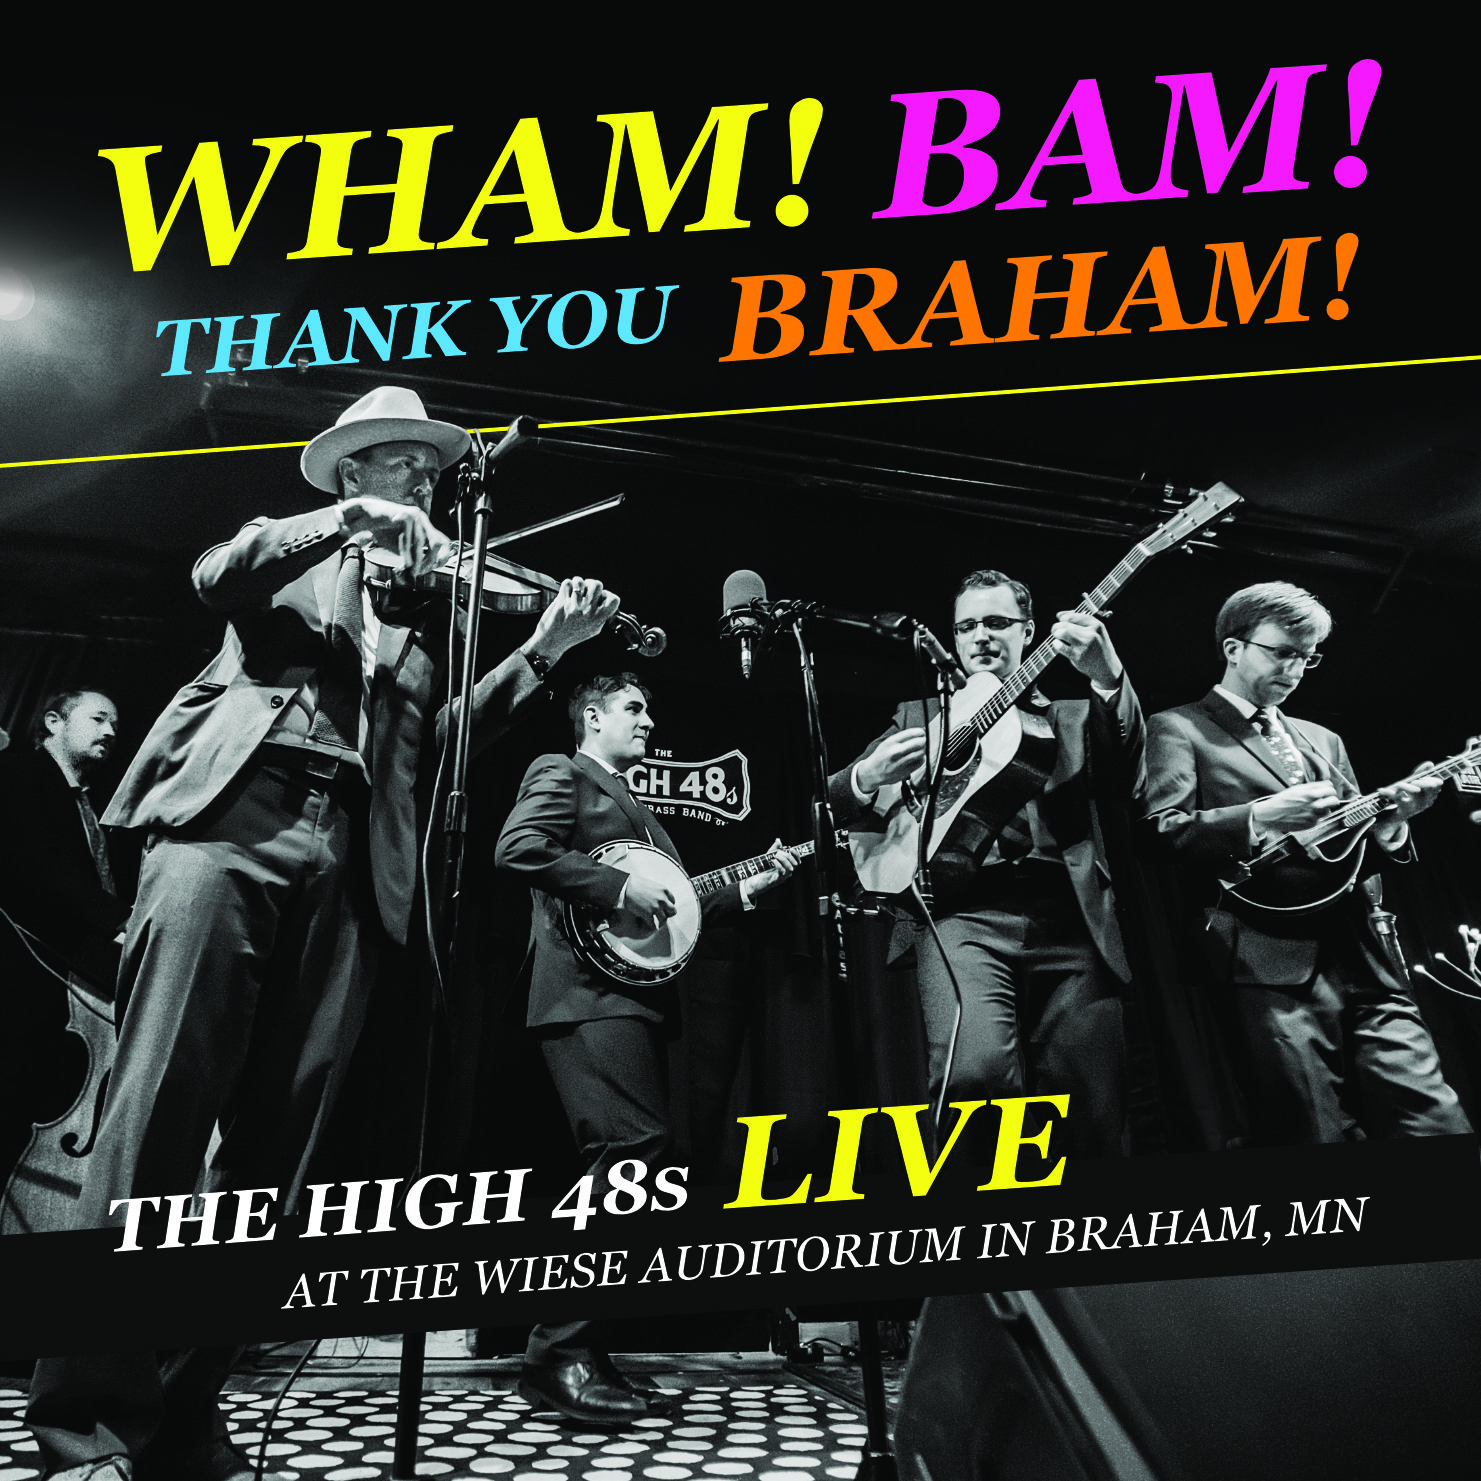 Wham! Bam! Thank You Braham! The High 48s Live at the Wiese Auditorium in Braham, MN